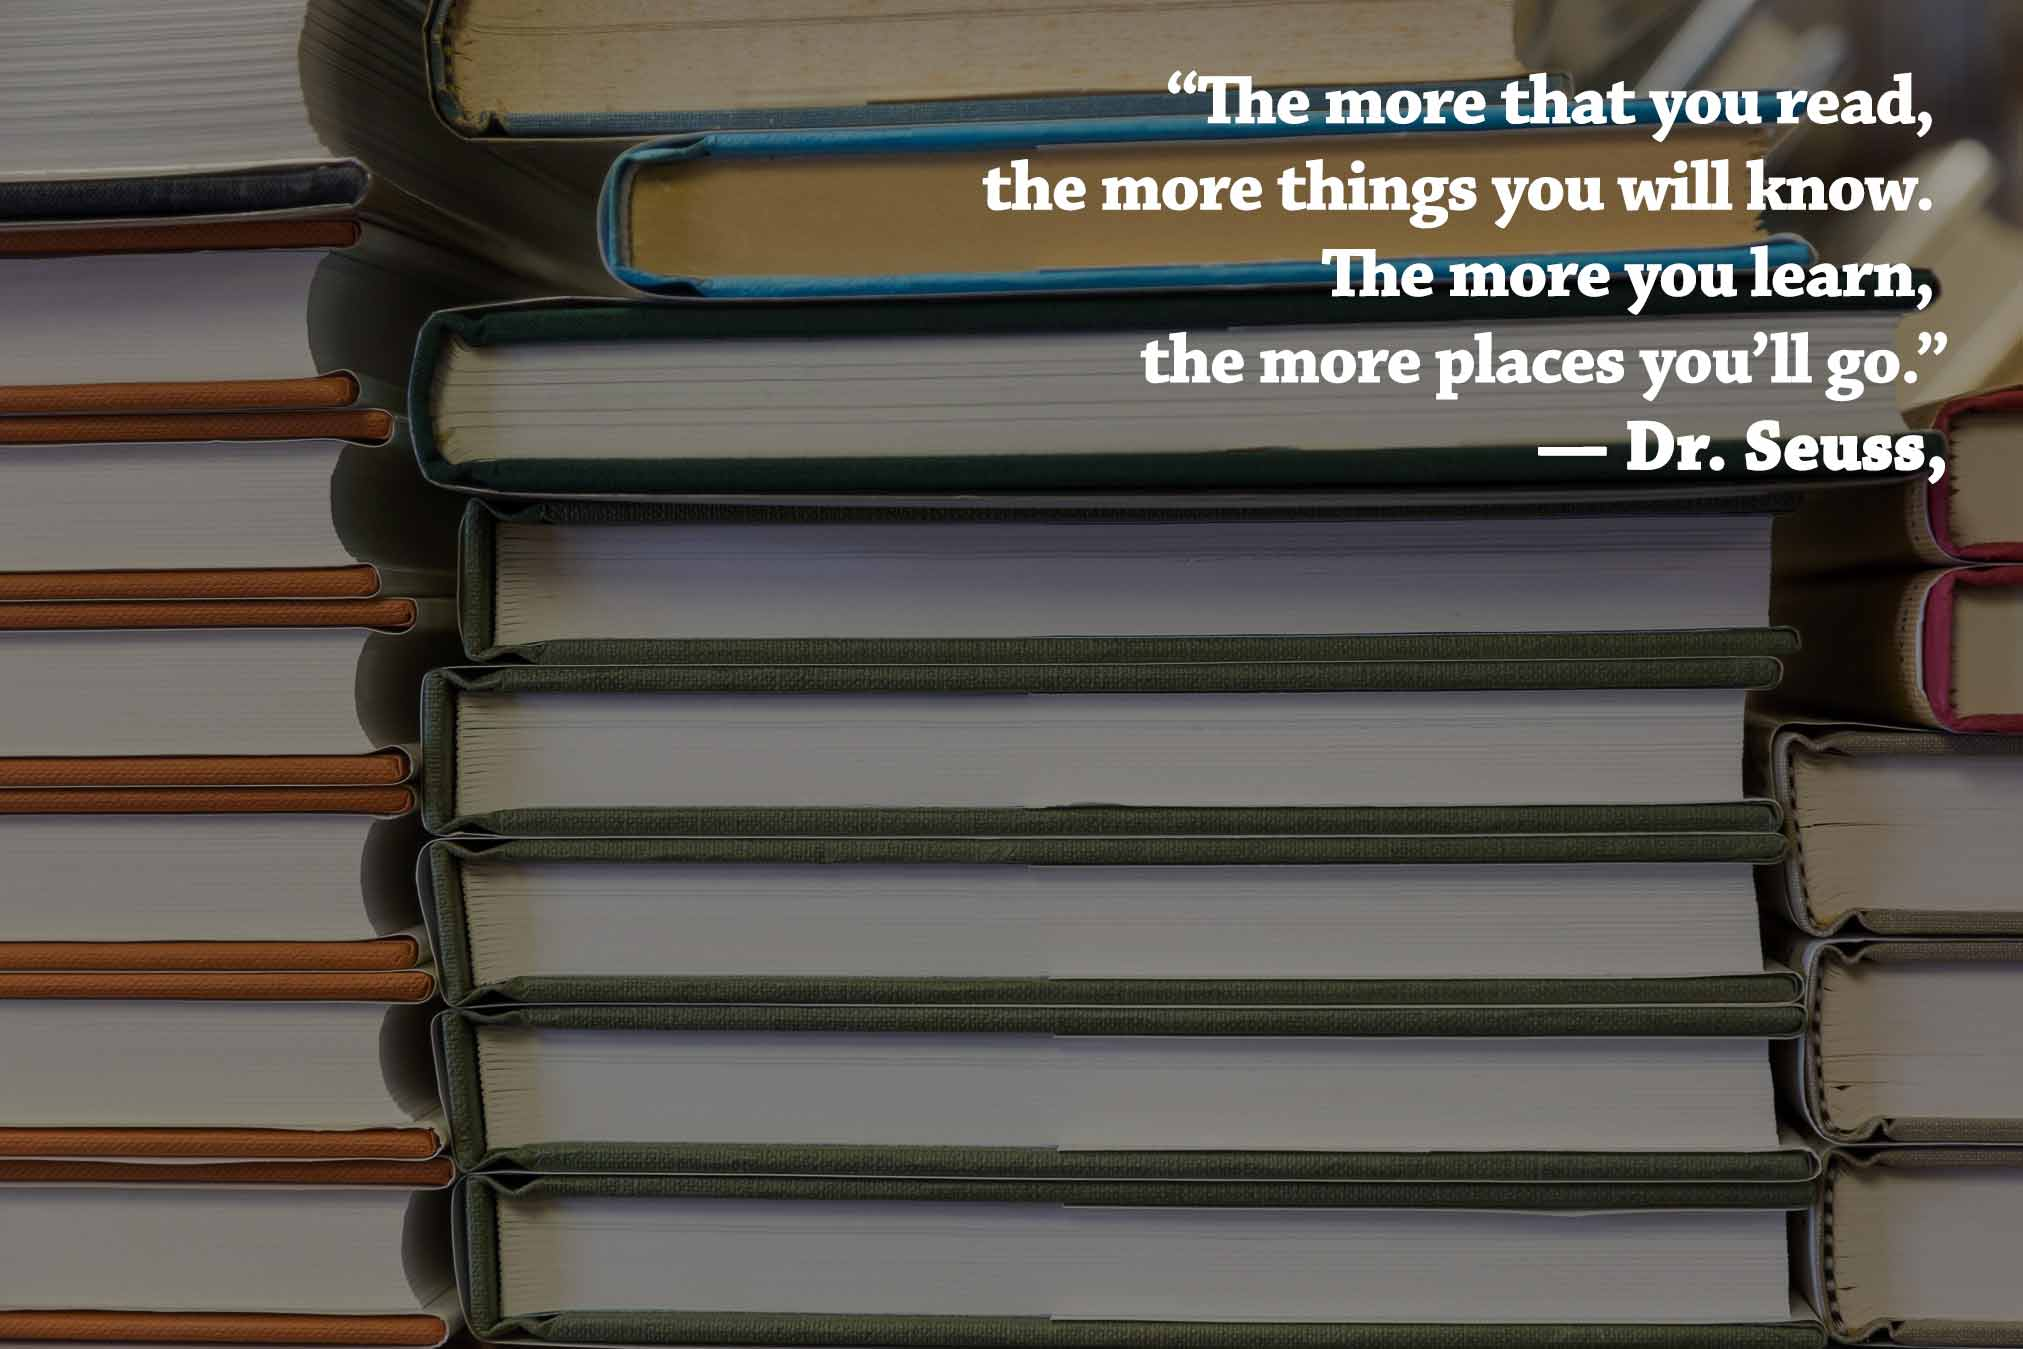 Books-Quote-Dr.Seuss.jpg